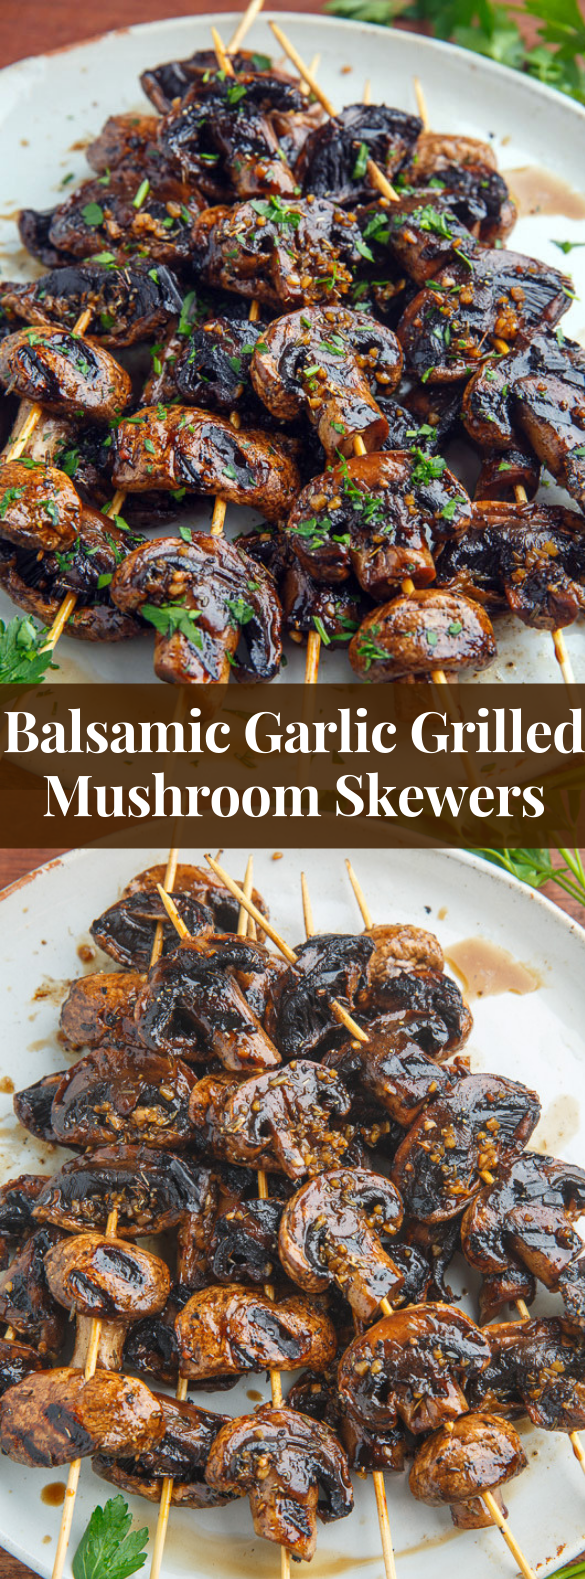 Balsamic Garlic Grilled Mushroom Skewers #vegetrarian #veggies #vegetariangrilling Balsamic Garlic Grilled Mushroom Skewers #vegetrarian